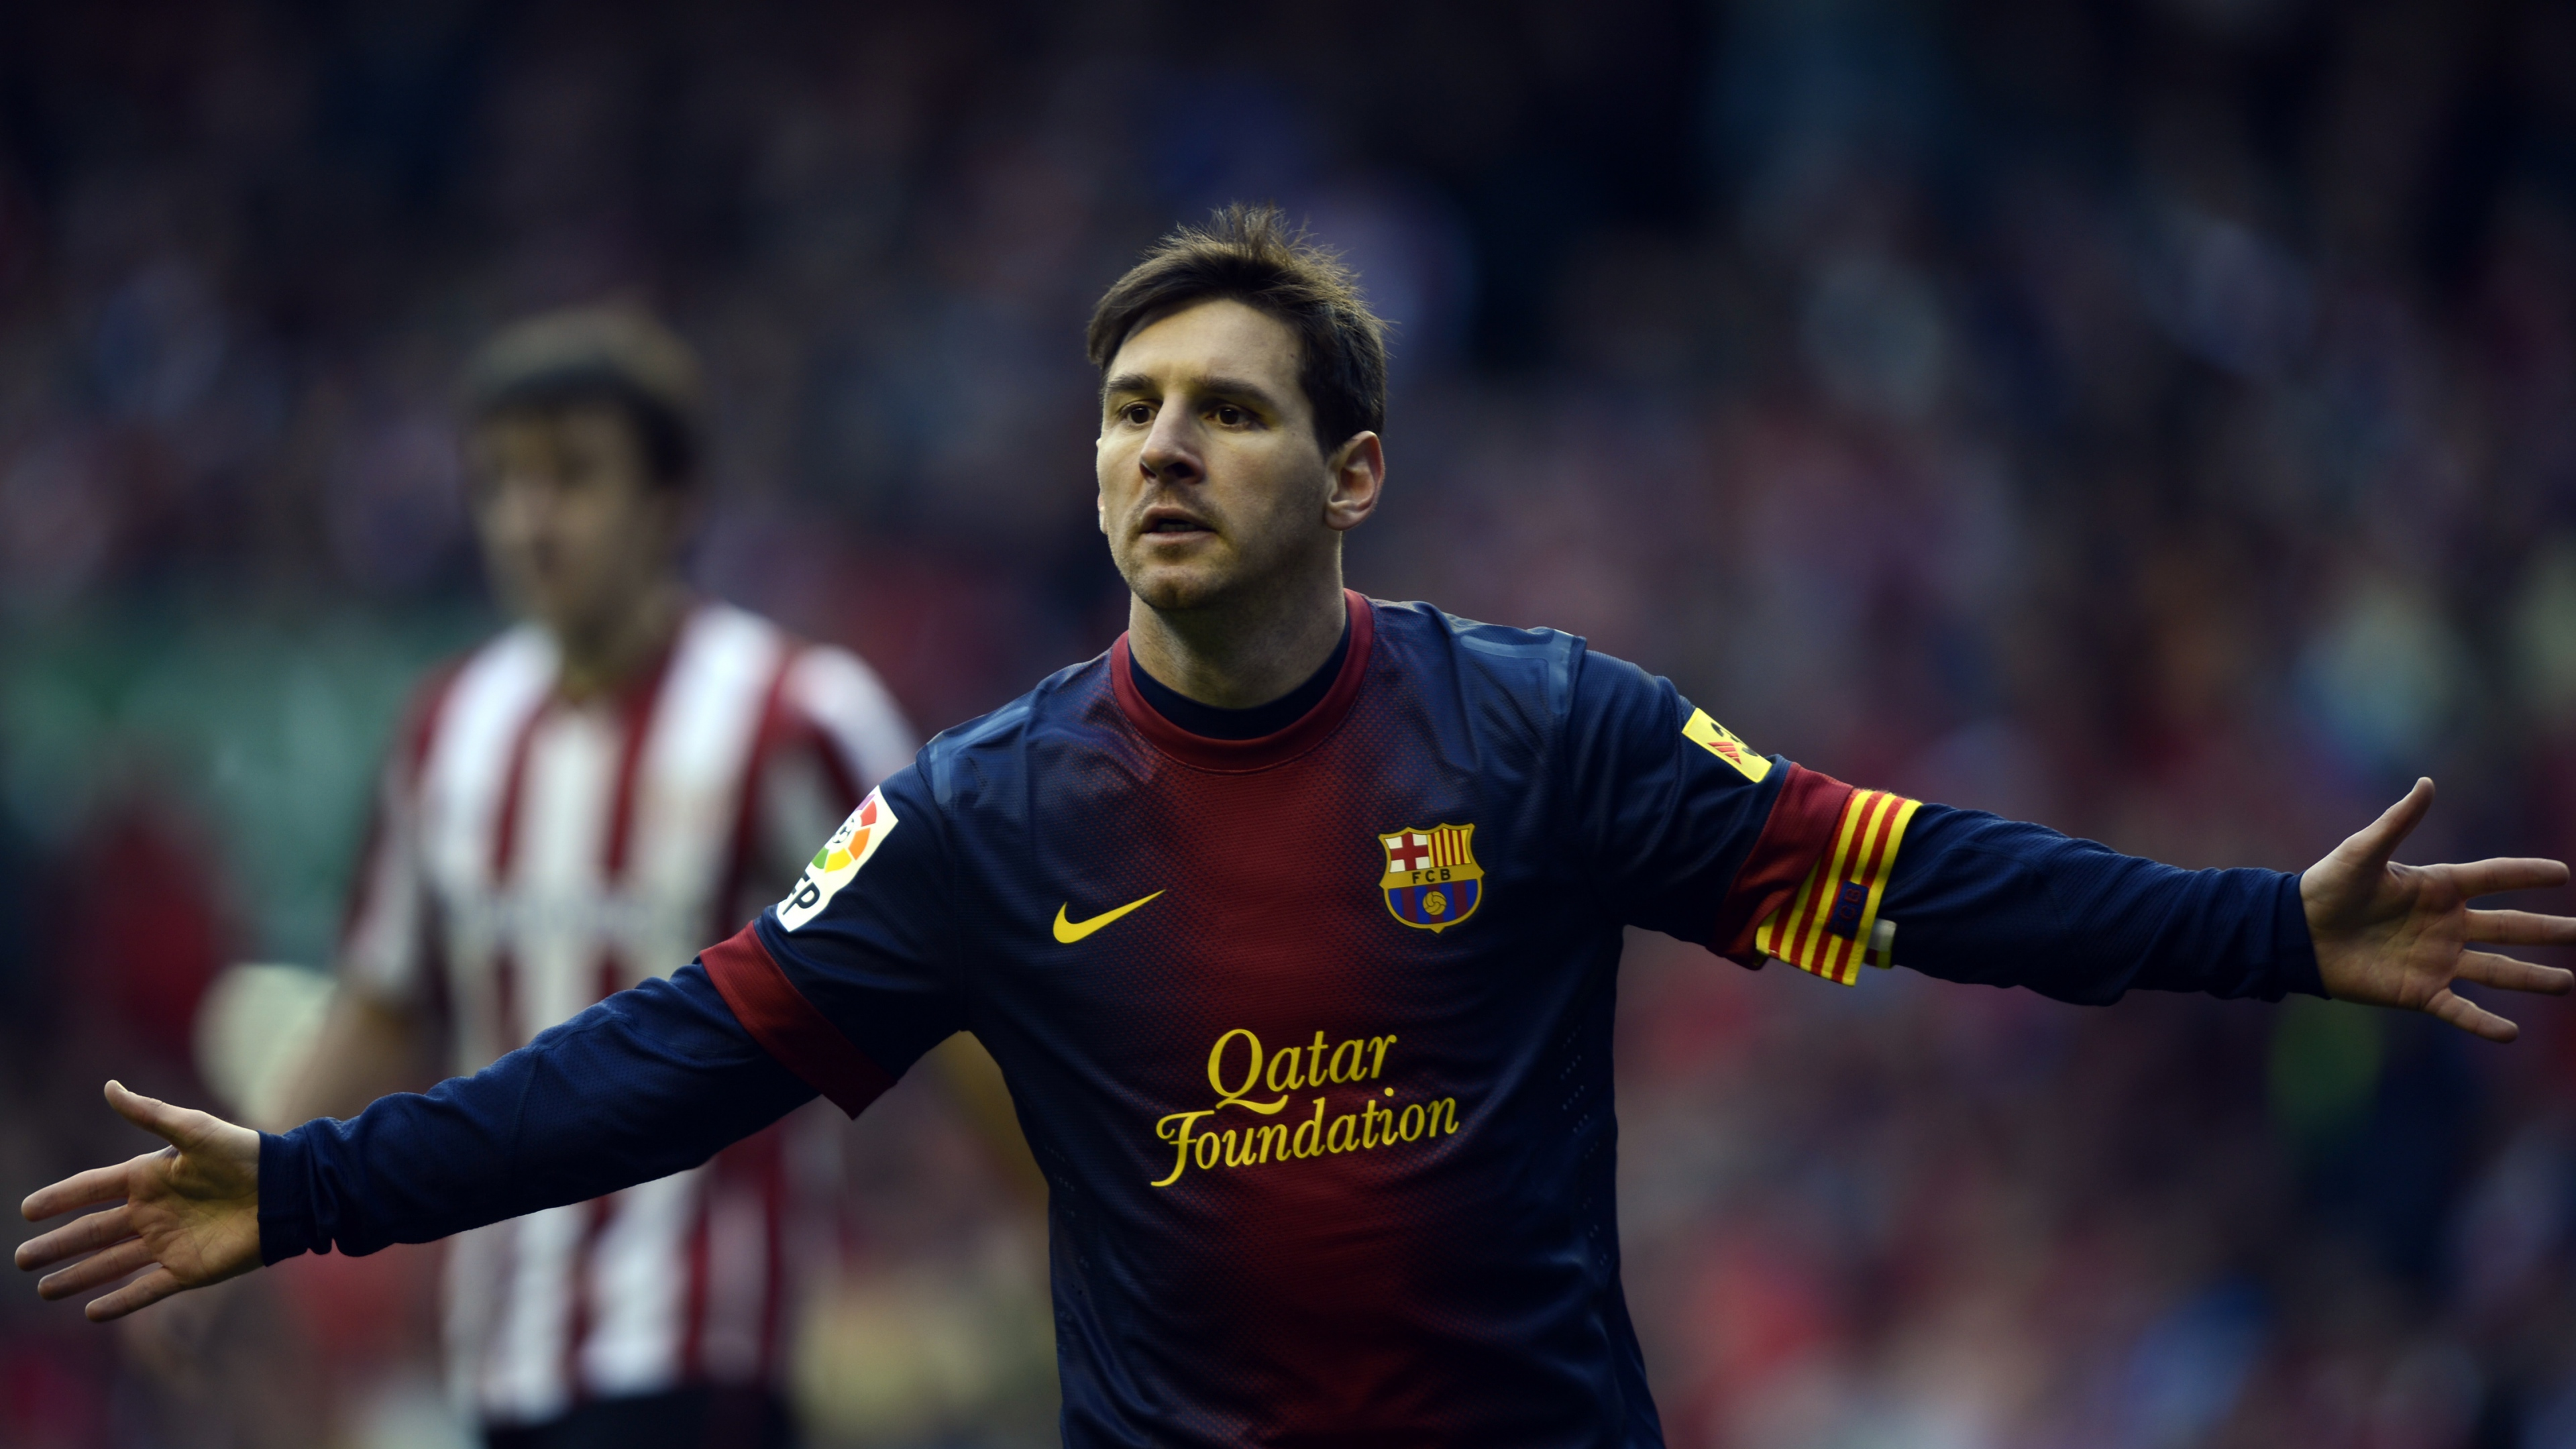 44 lionel messi hd wallpapers | background images - wallpaper abyss